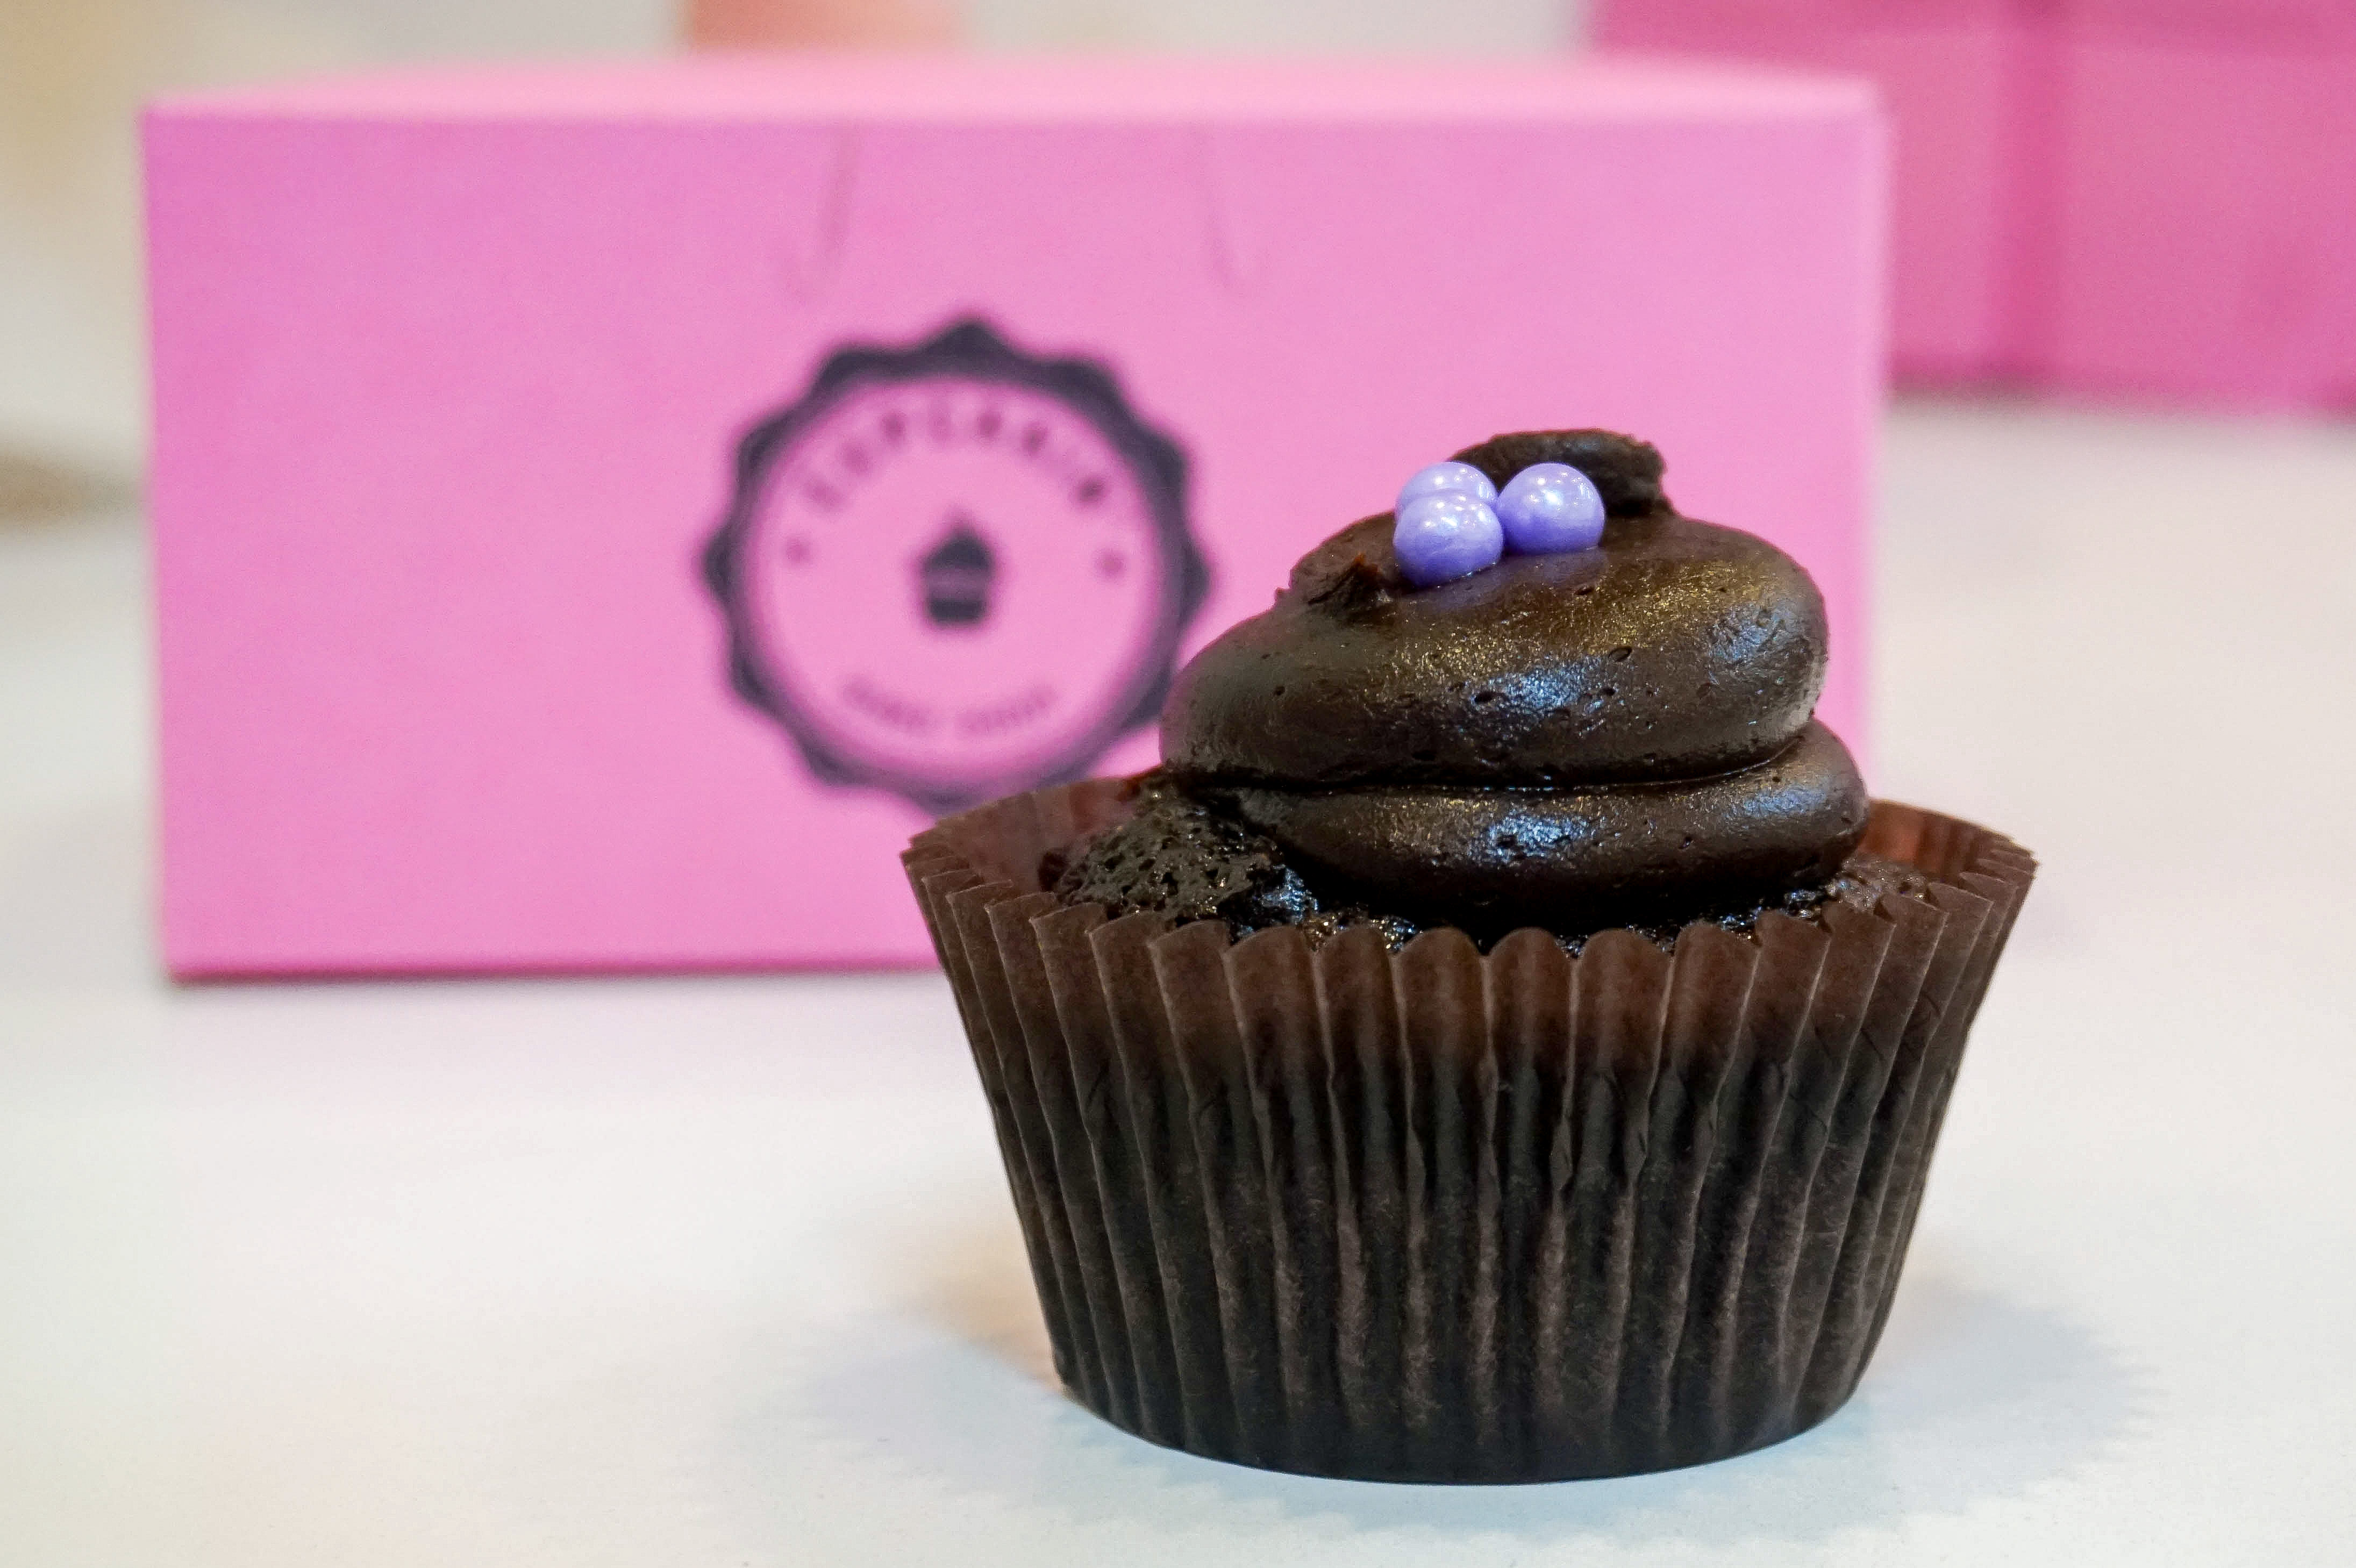 You are a Double Chocolate cupcake!